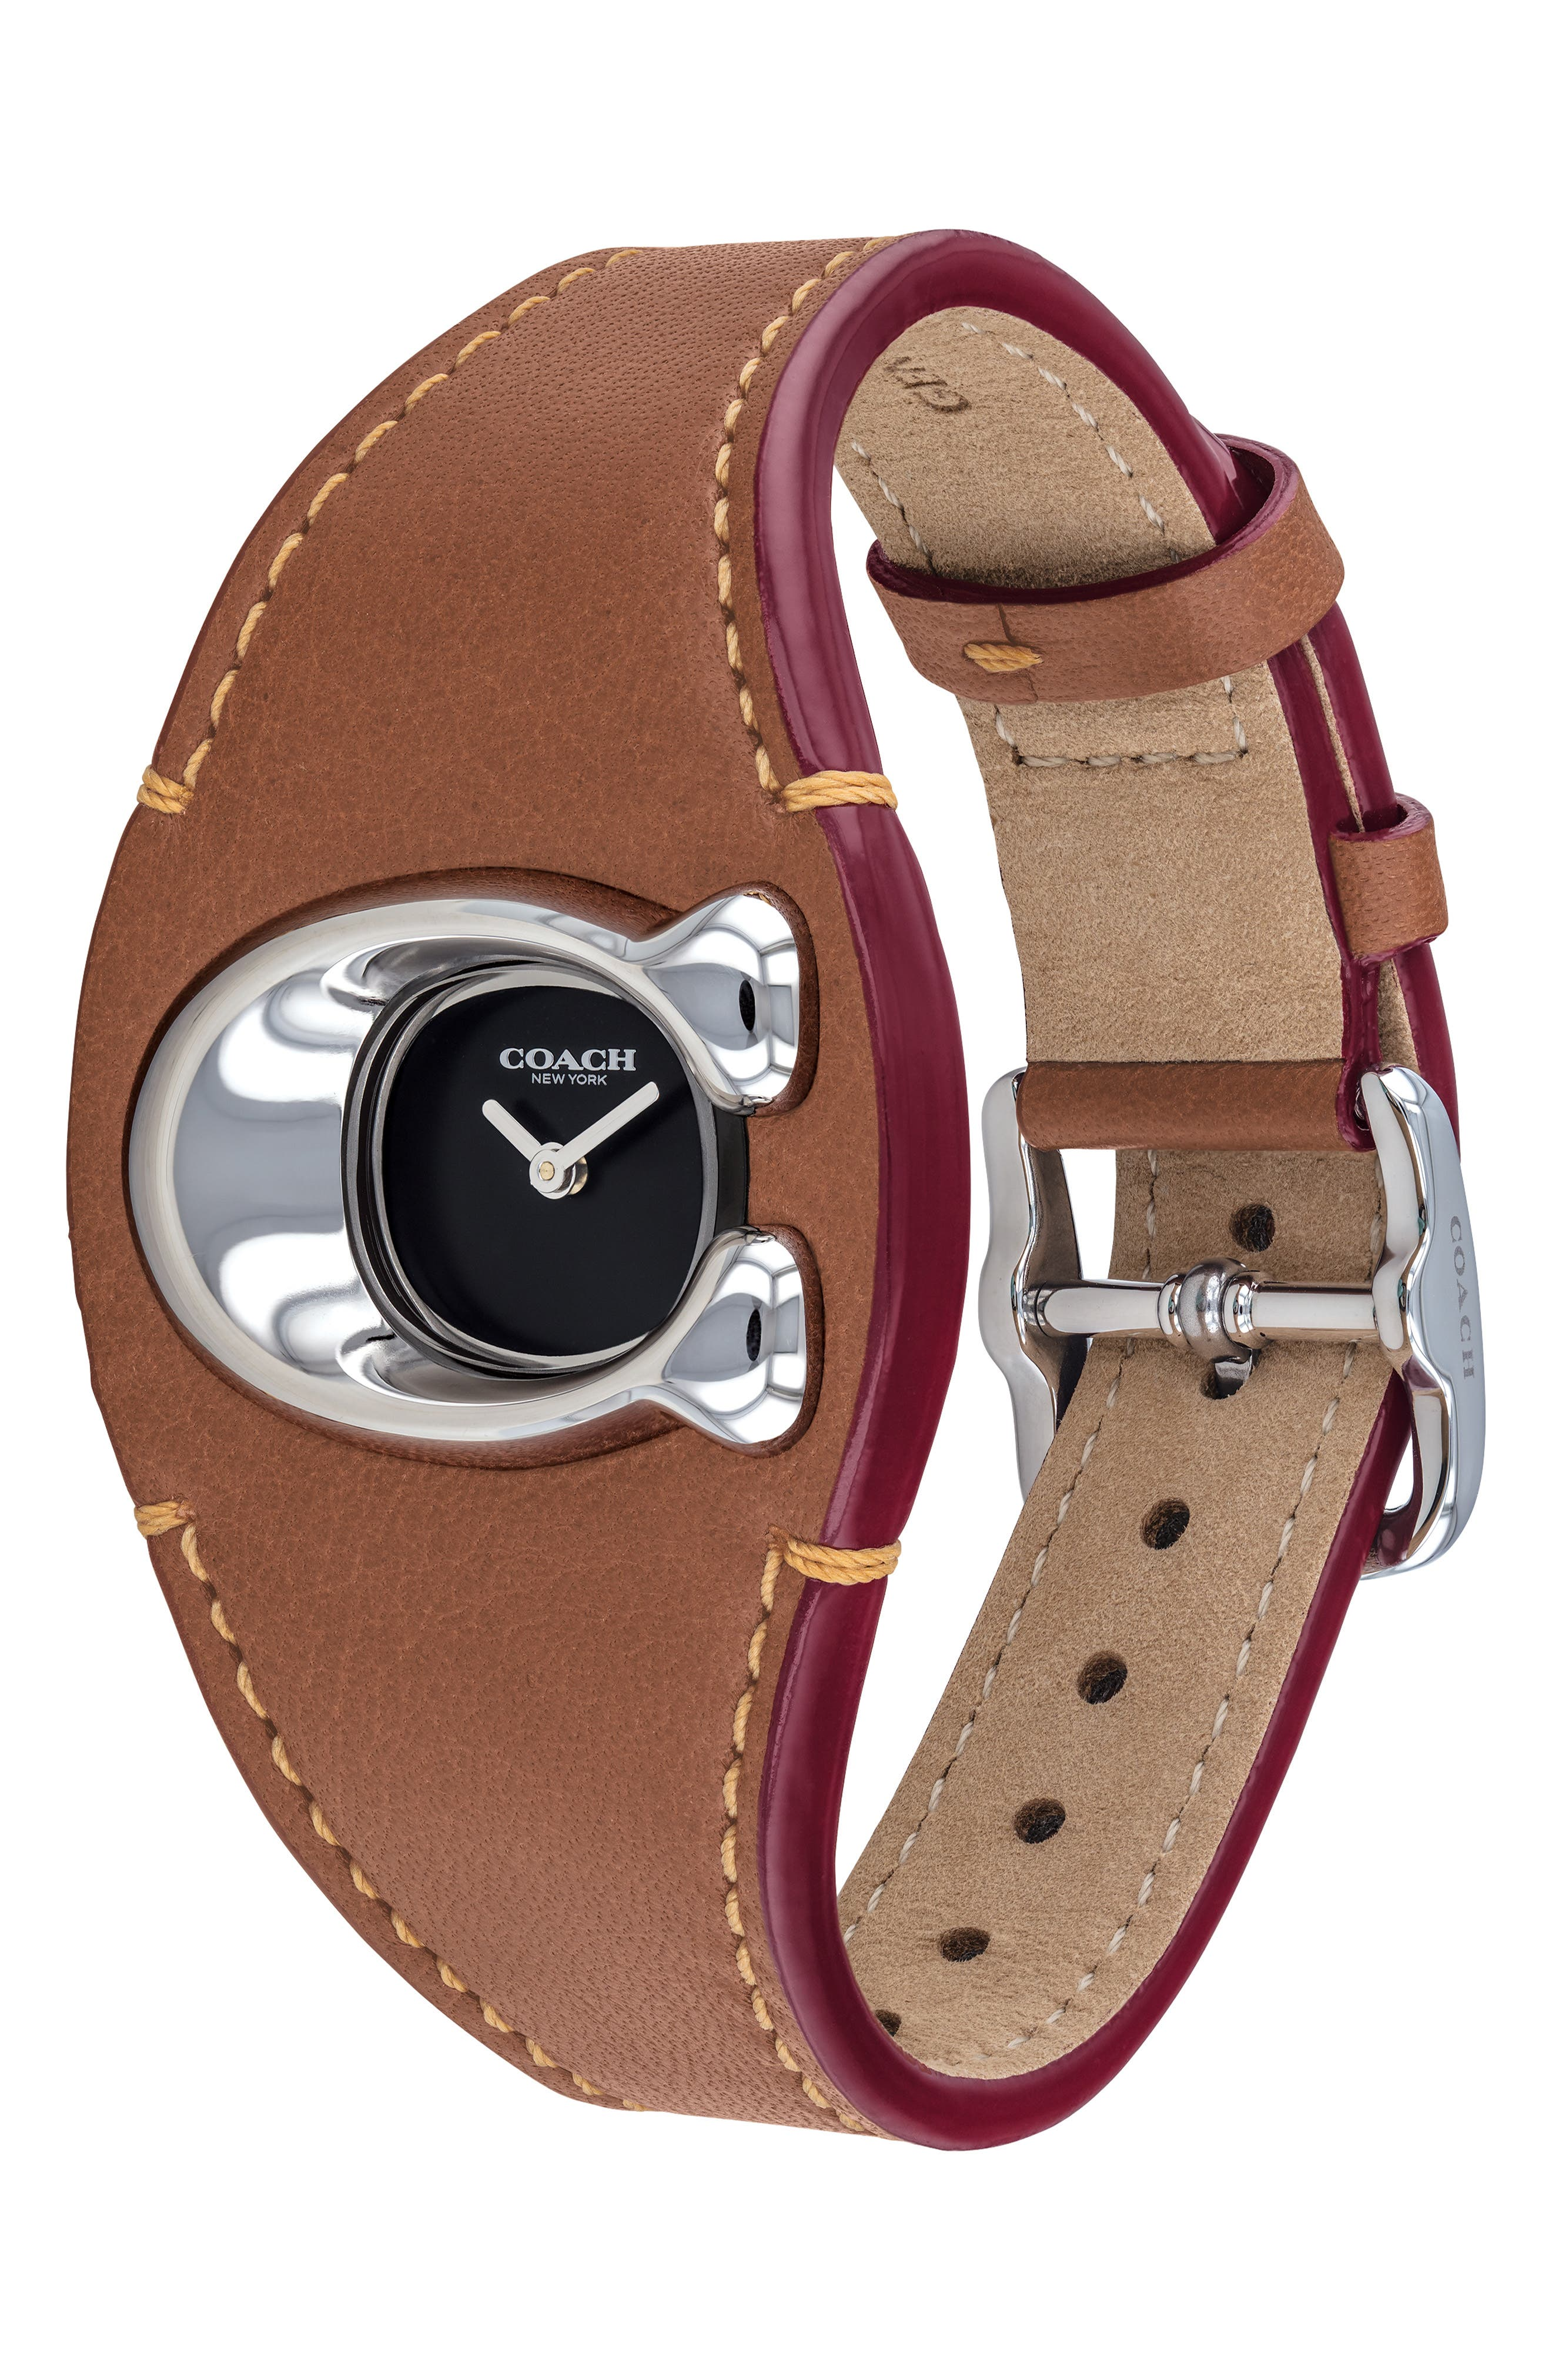 COACH,                             Signature C Leather Strap Watch, 29mm x 21mm,                             Alternate thumbnail 3, color,                             200